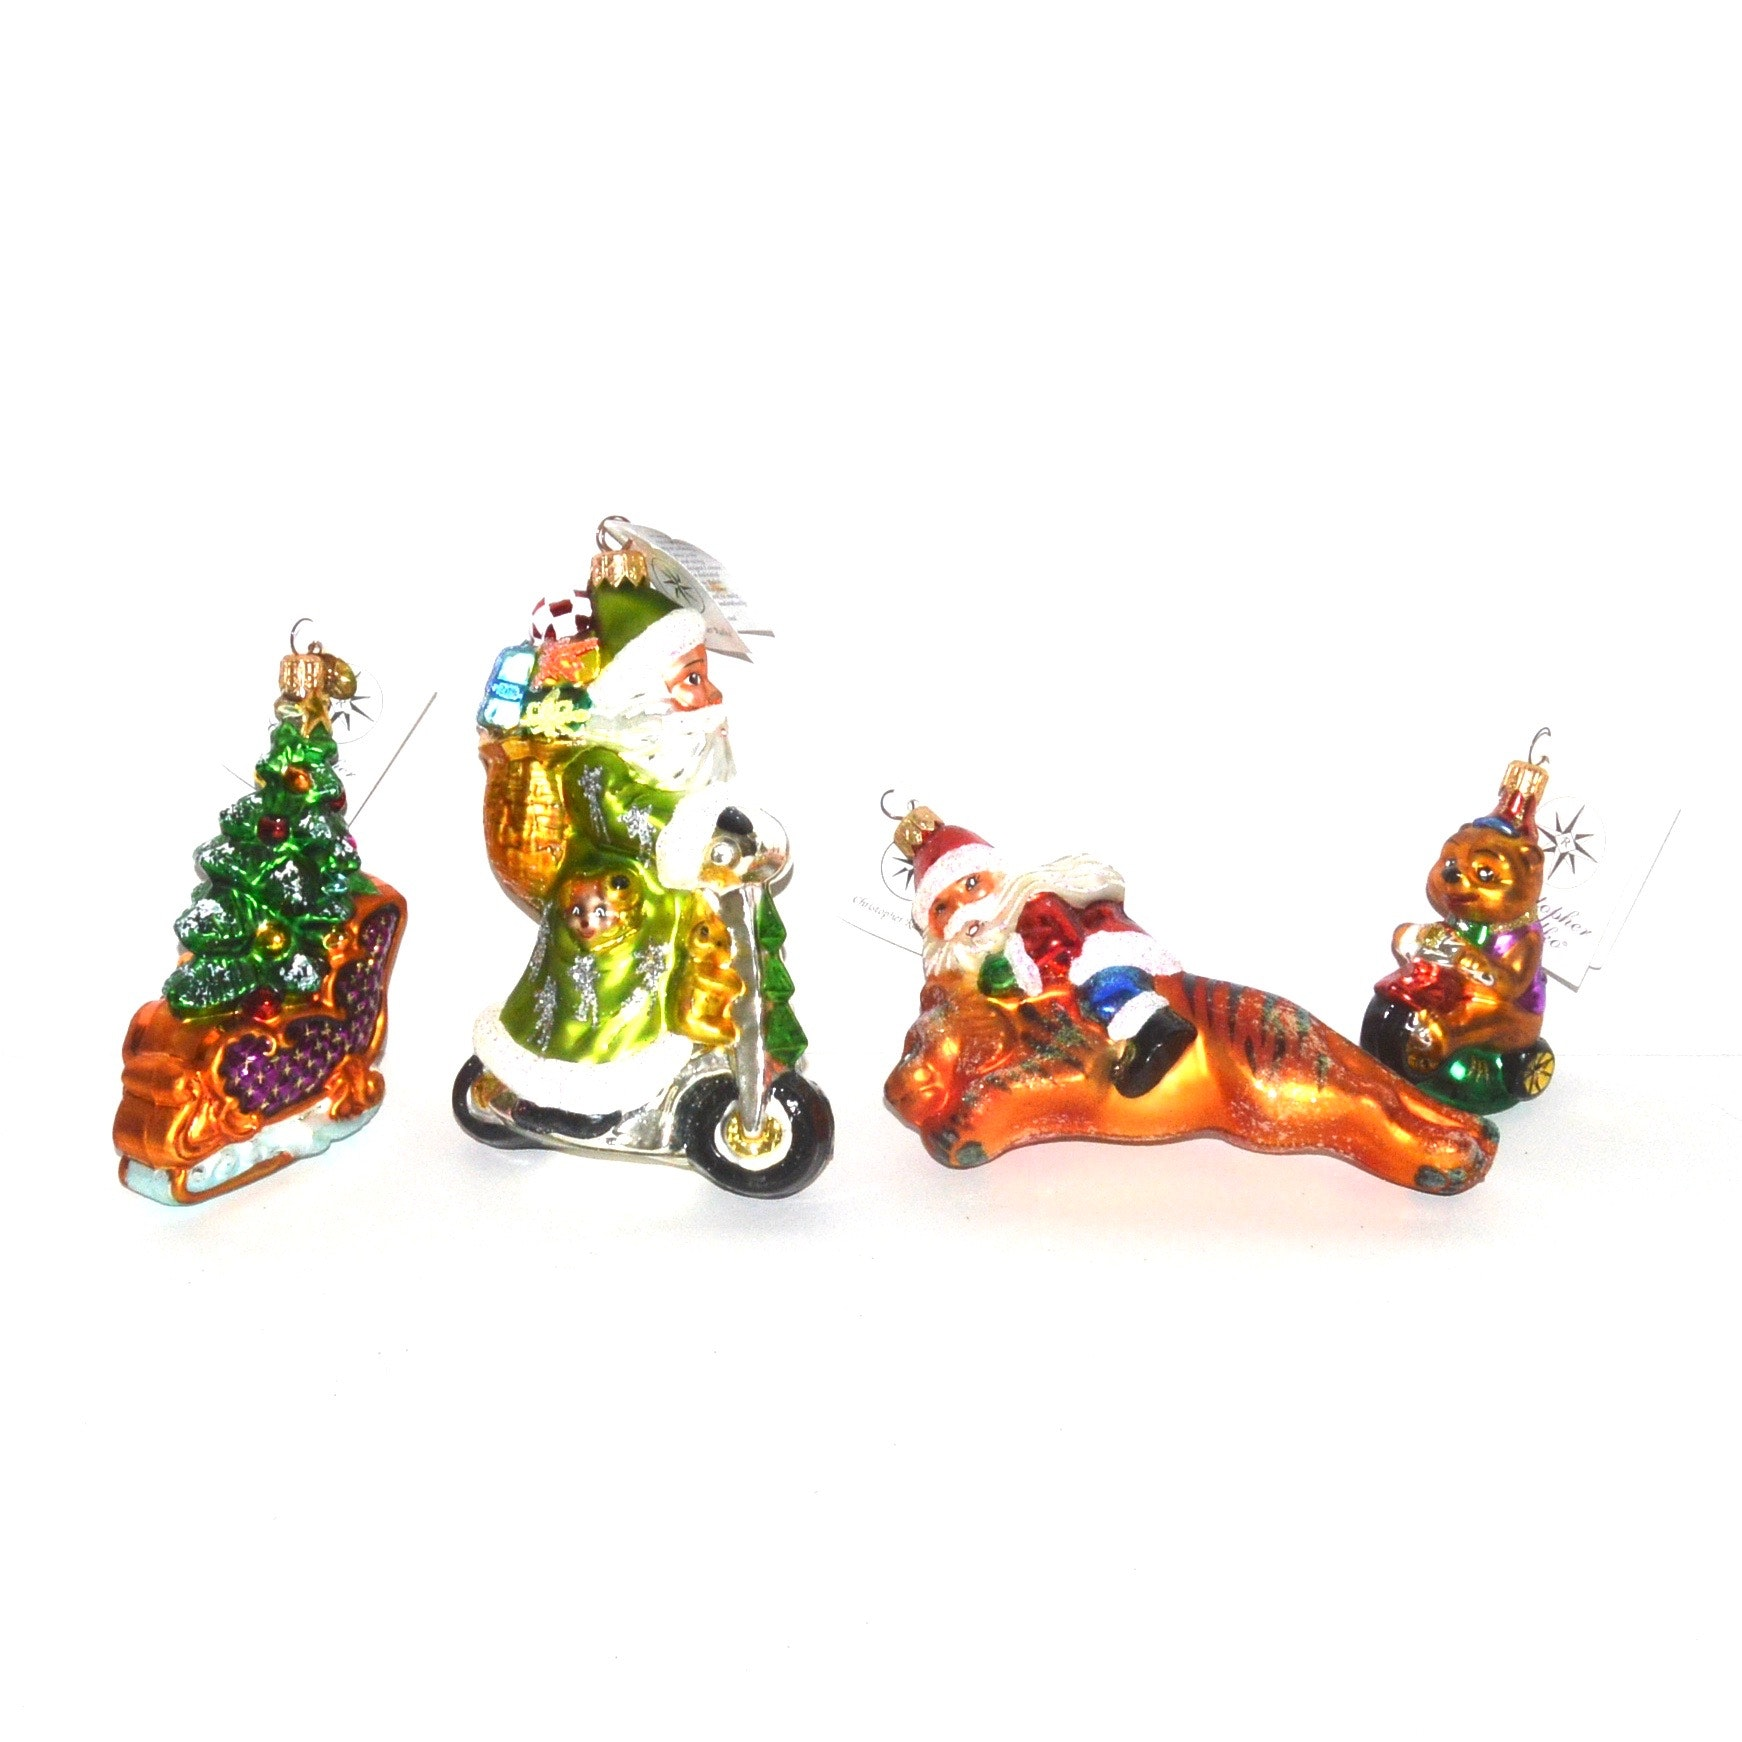 Christopher Radko Hand-Painted Glass Ornaments